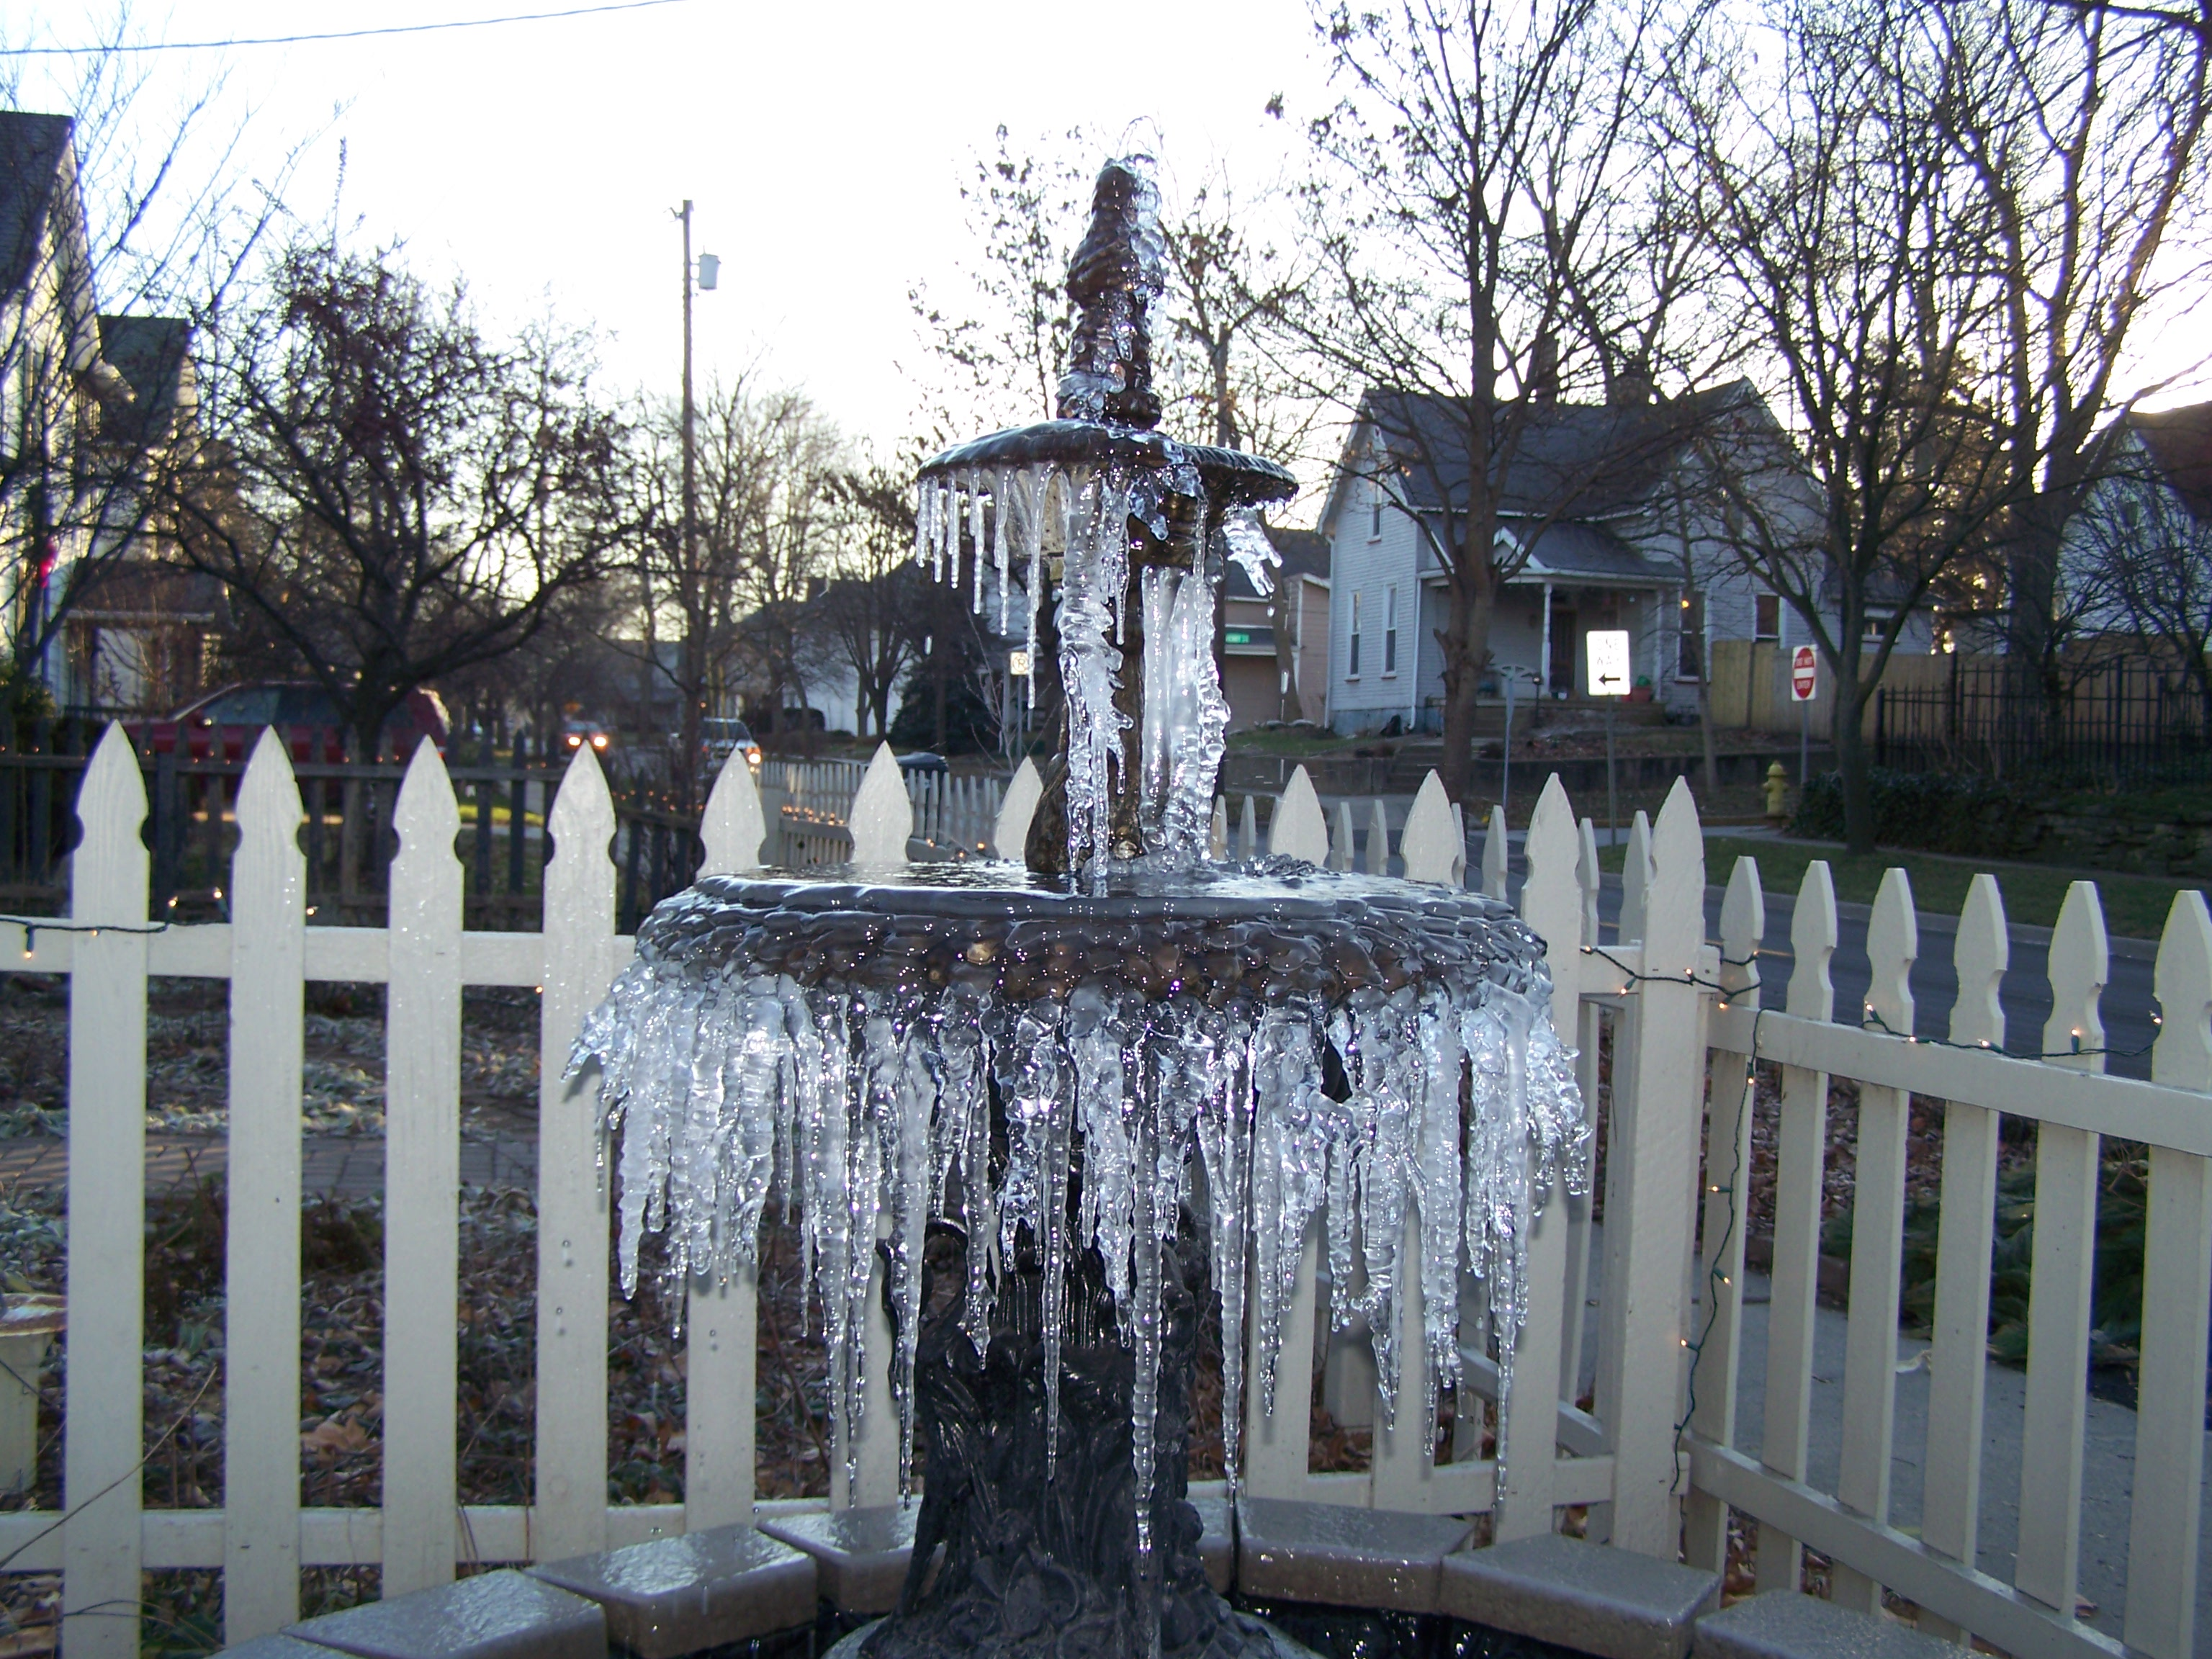 FrozenFountain.JPG